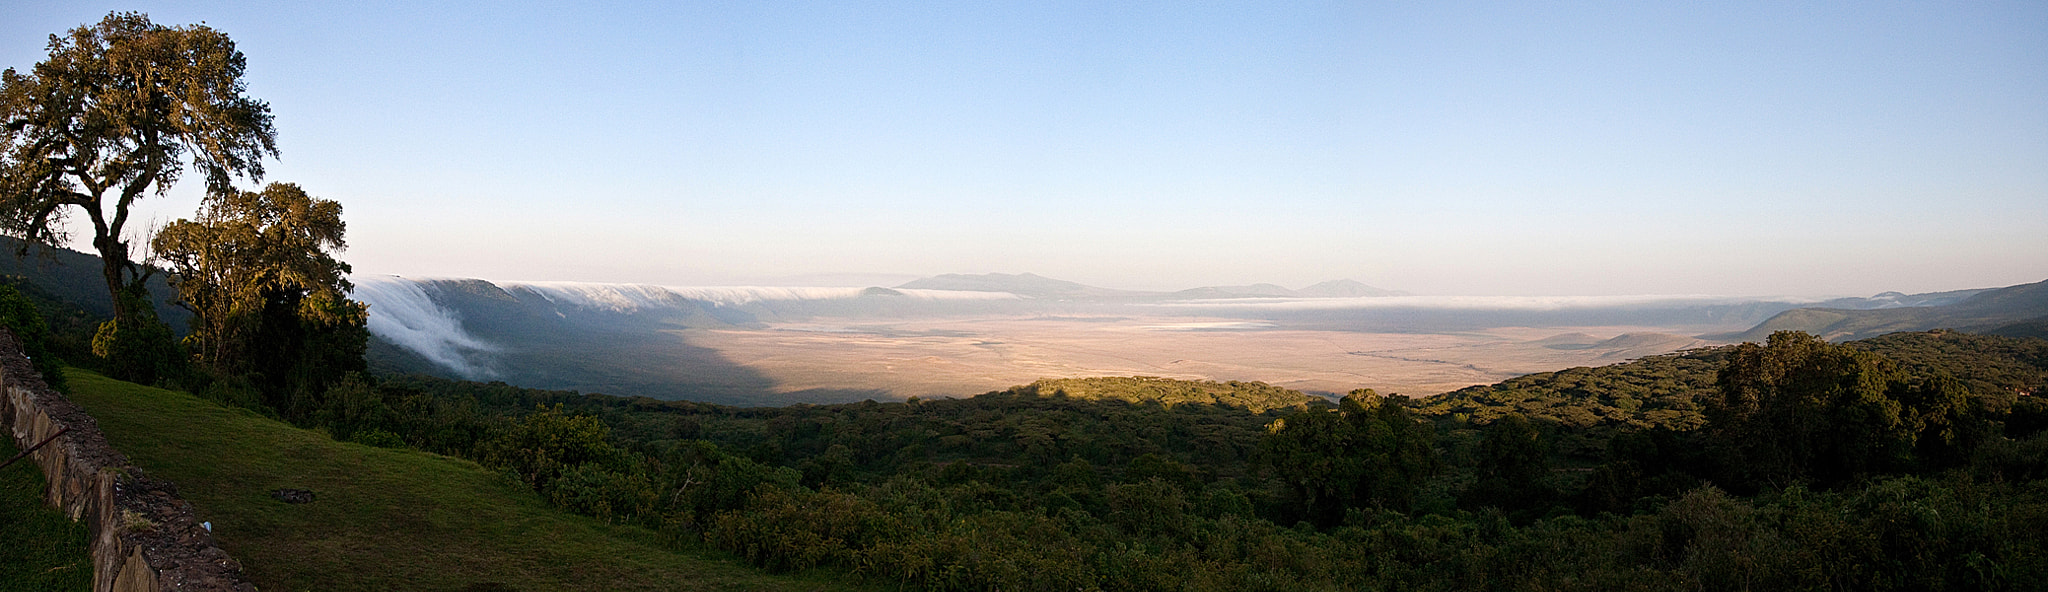 Photograph Ngorongoro crater at dawn, panorama by Jochen Van de Perre on 500px